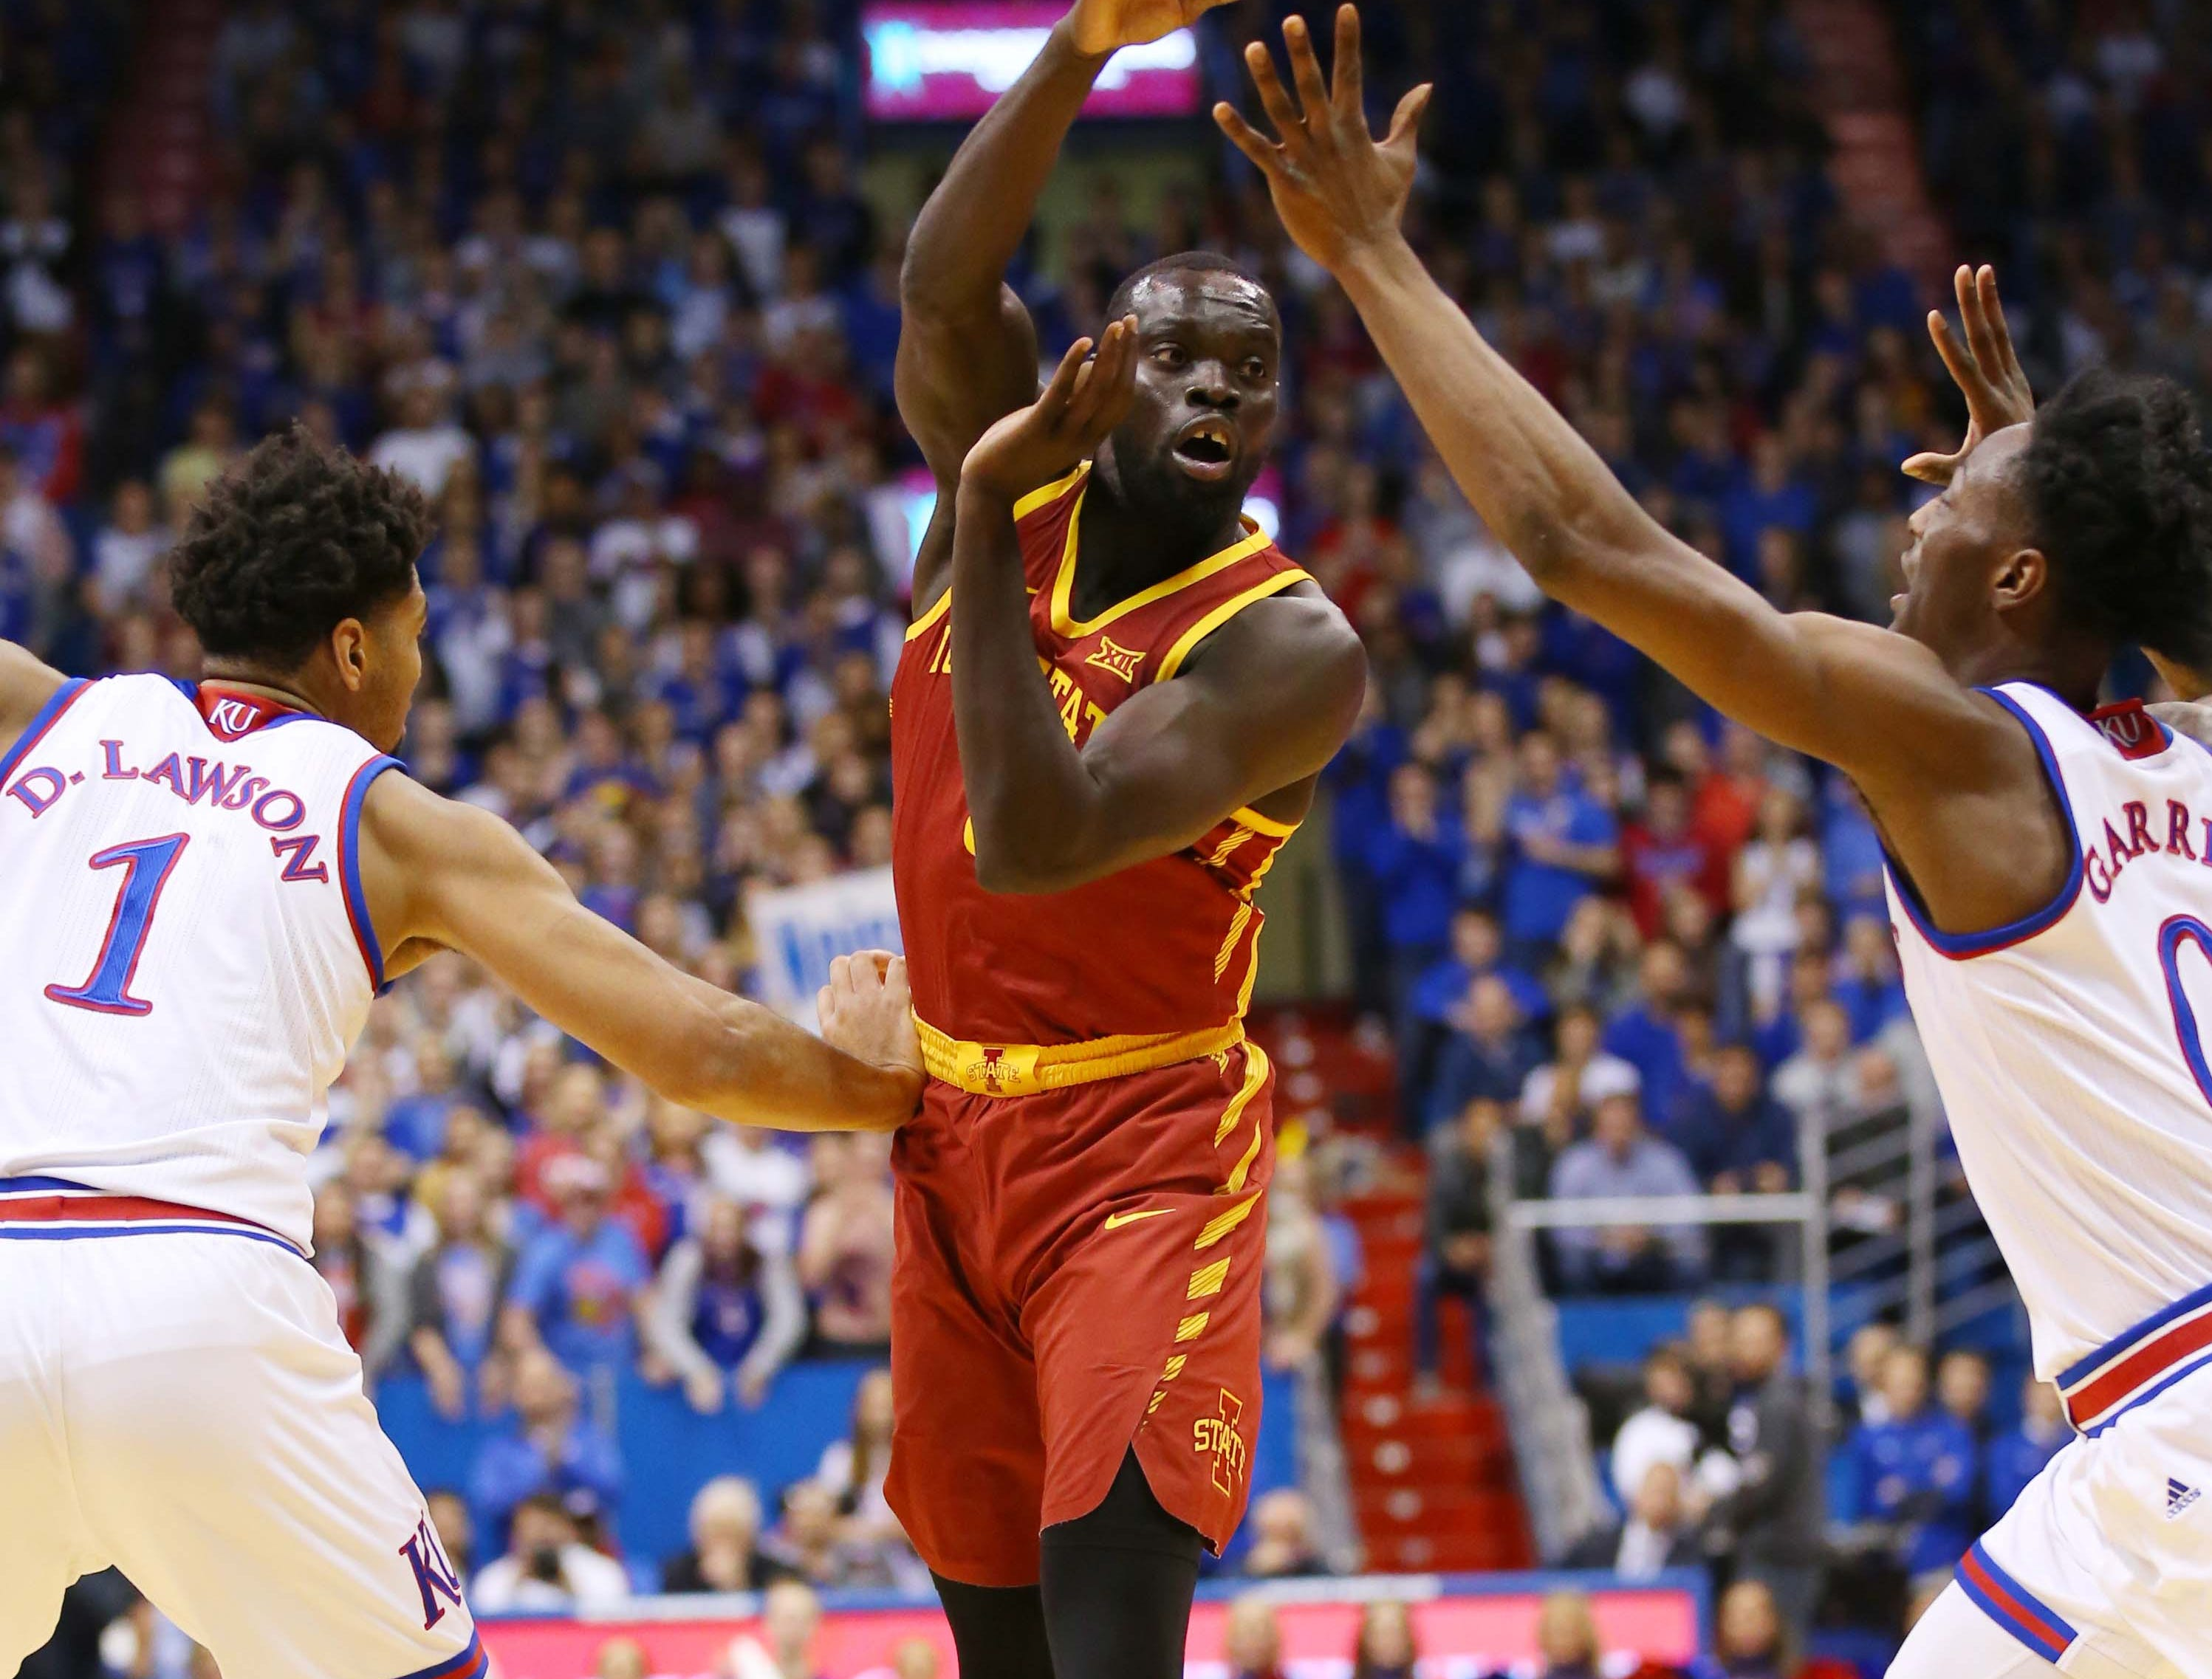 Iowa State Cyclones guard Marial Shayok (3) passes the ball as Kansas Jayhawks forward Dedric Lawson (1) and guard Marcus Garrett (0) defend in the first half at Allen Fieldhouse.